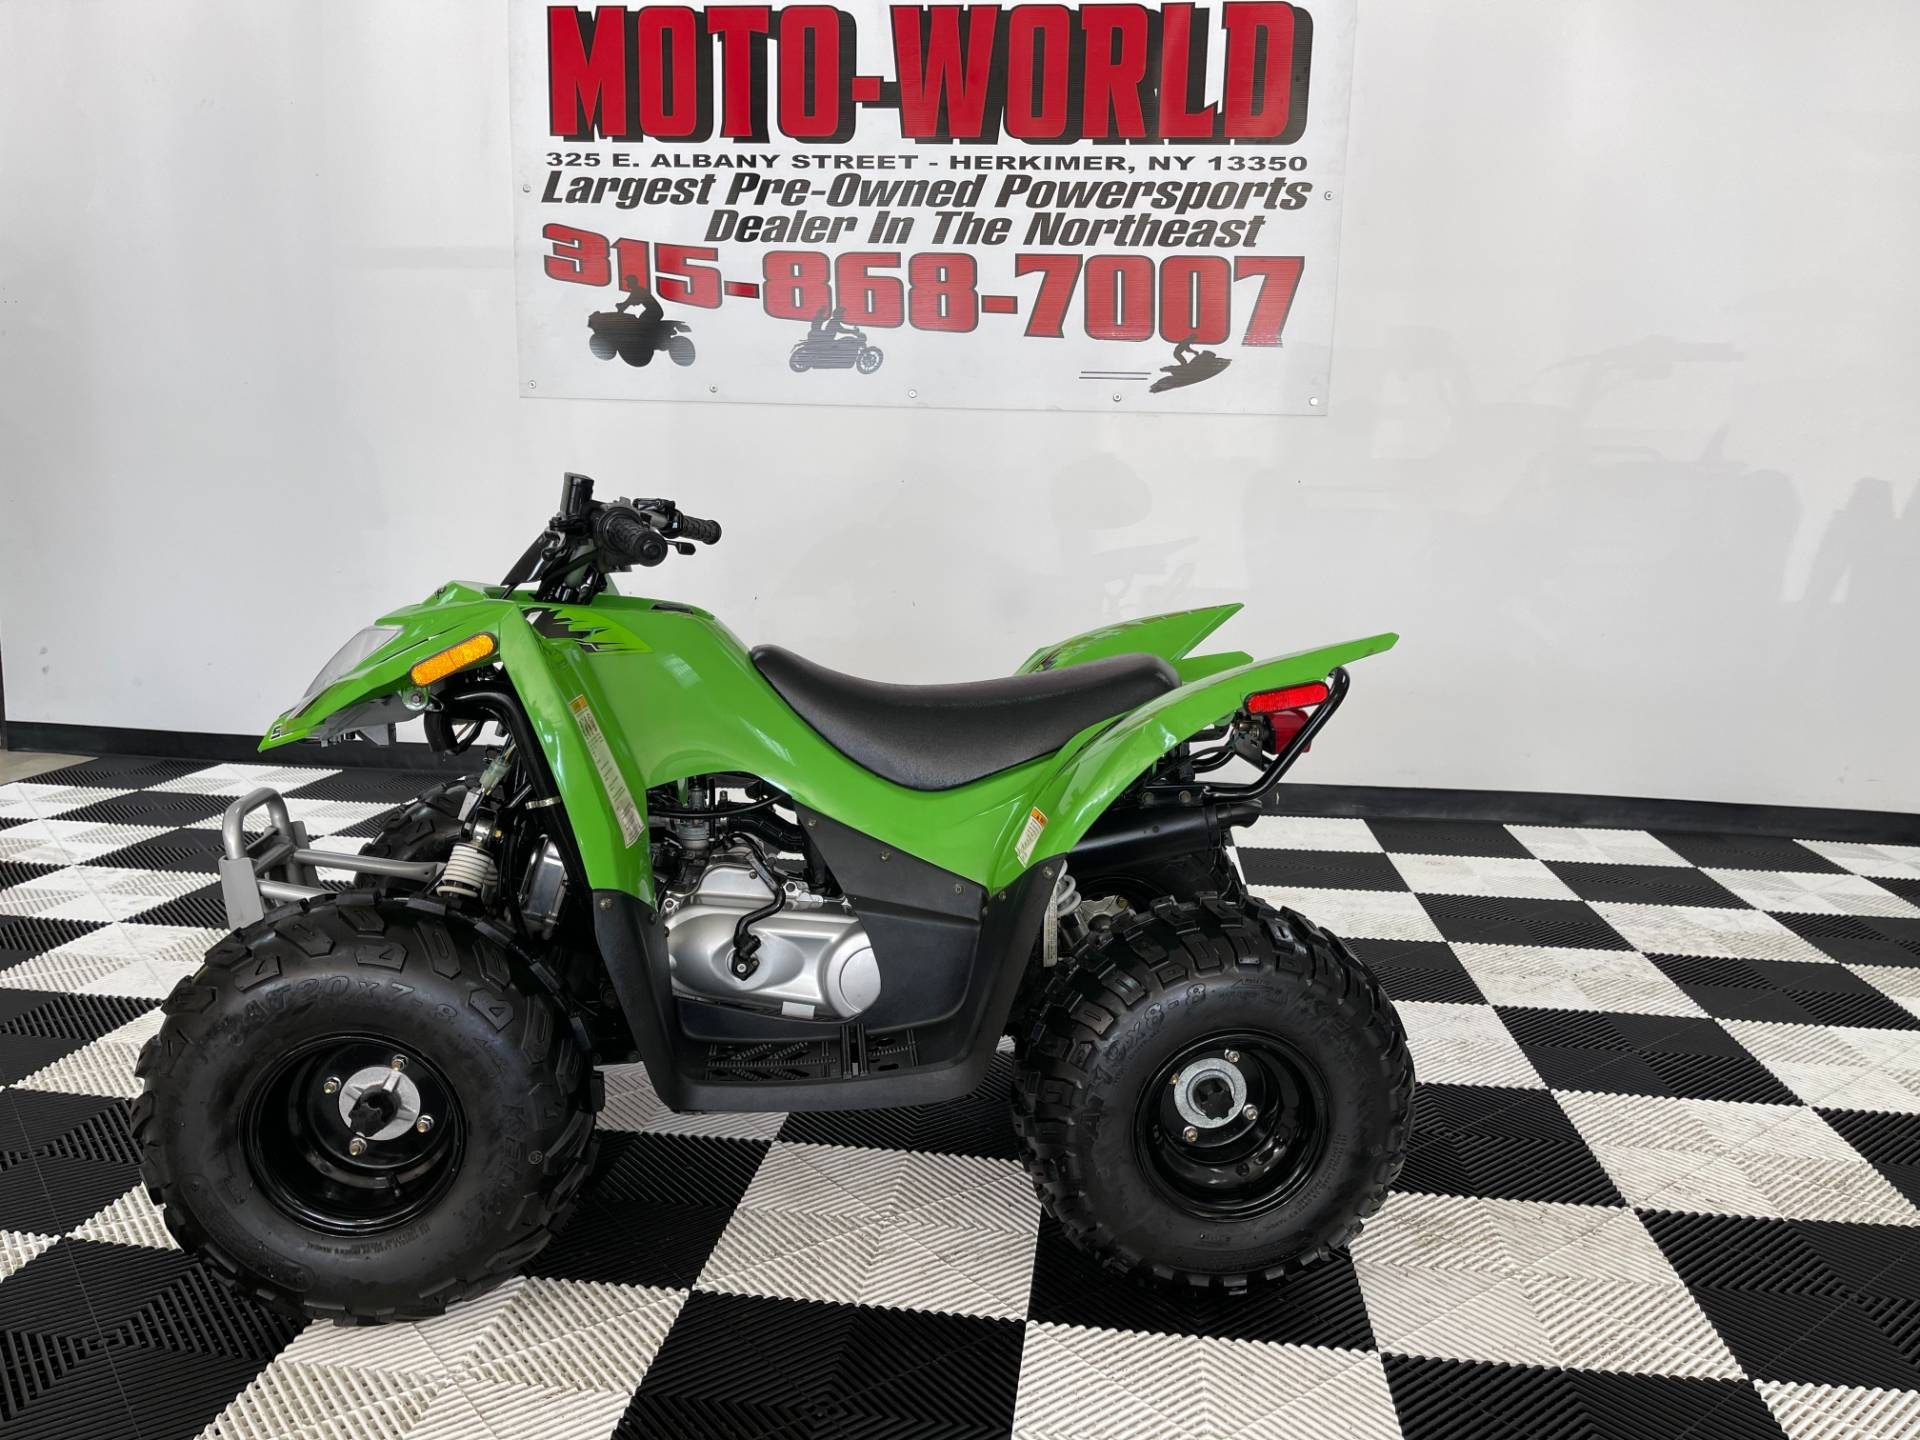 2017 Arctic Cat DVX 90 in Herkimer, New York - Photo 3